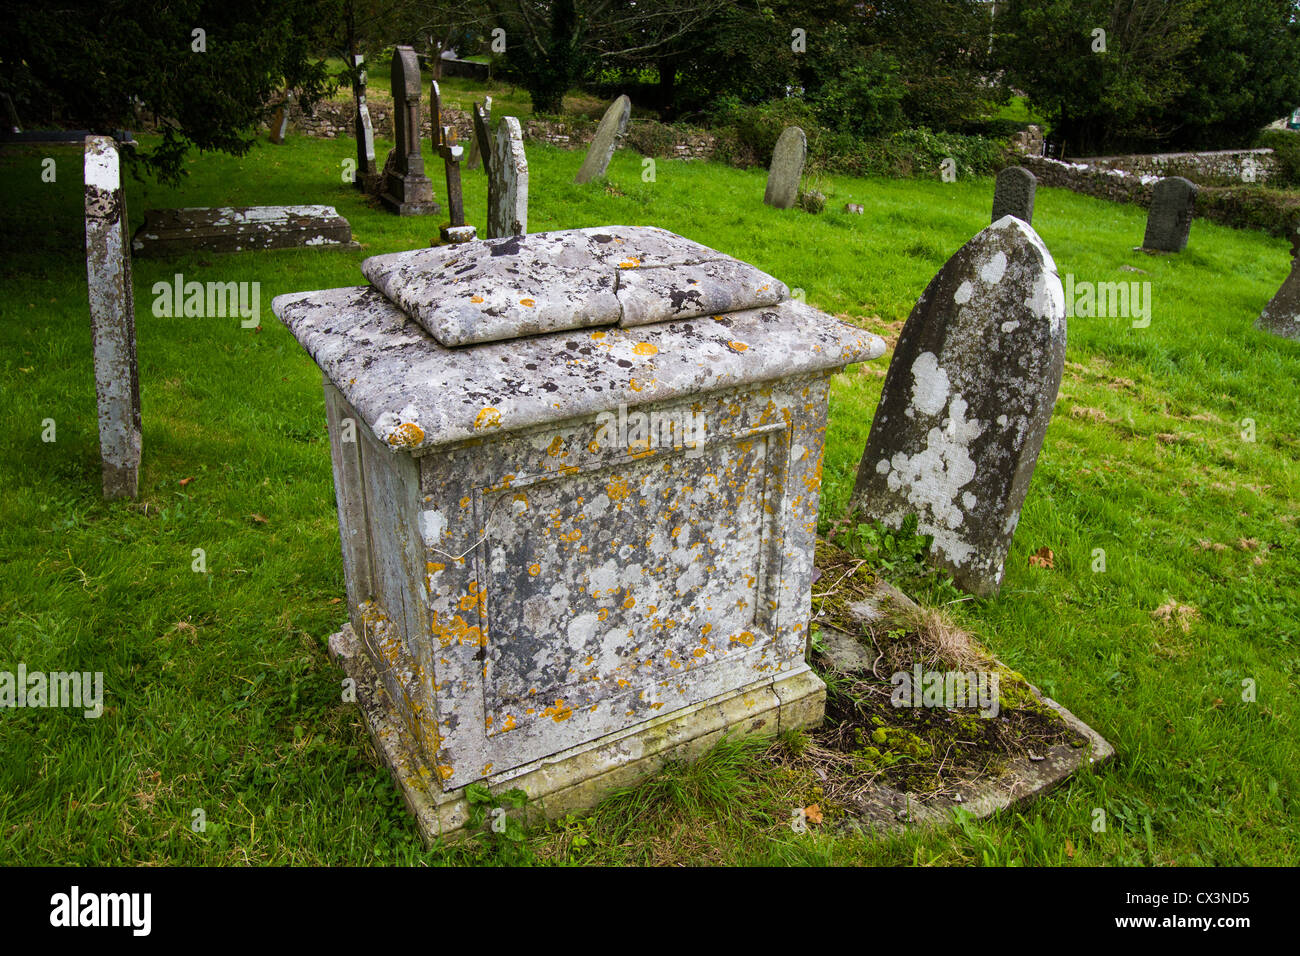 Tombstones with attractive mottled patterns of lichens on them - Stock Image